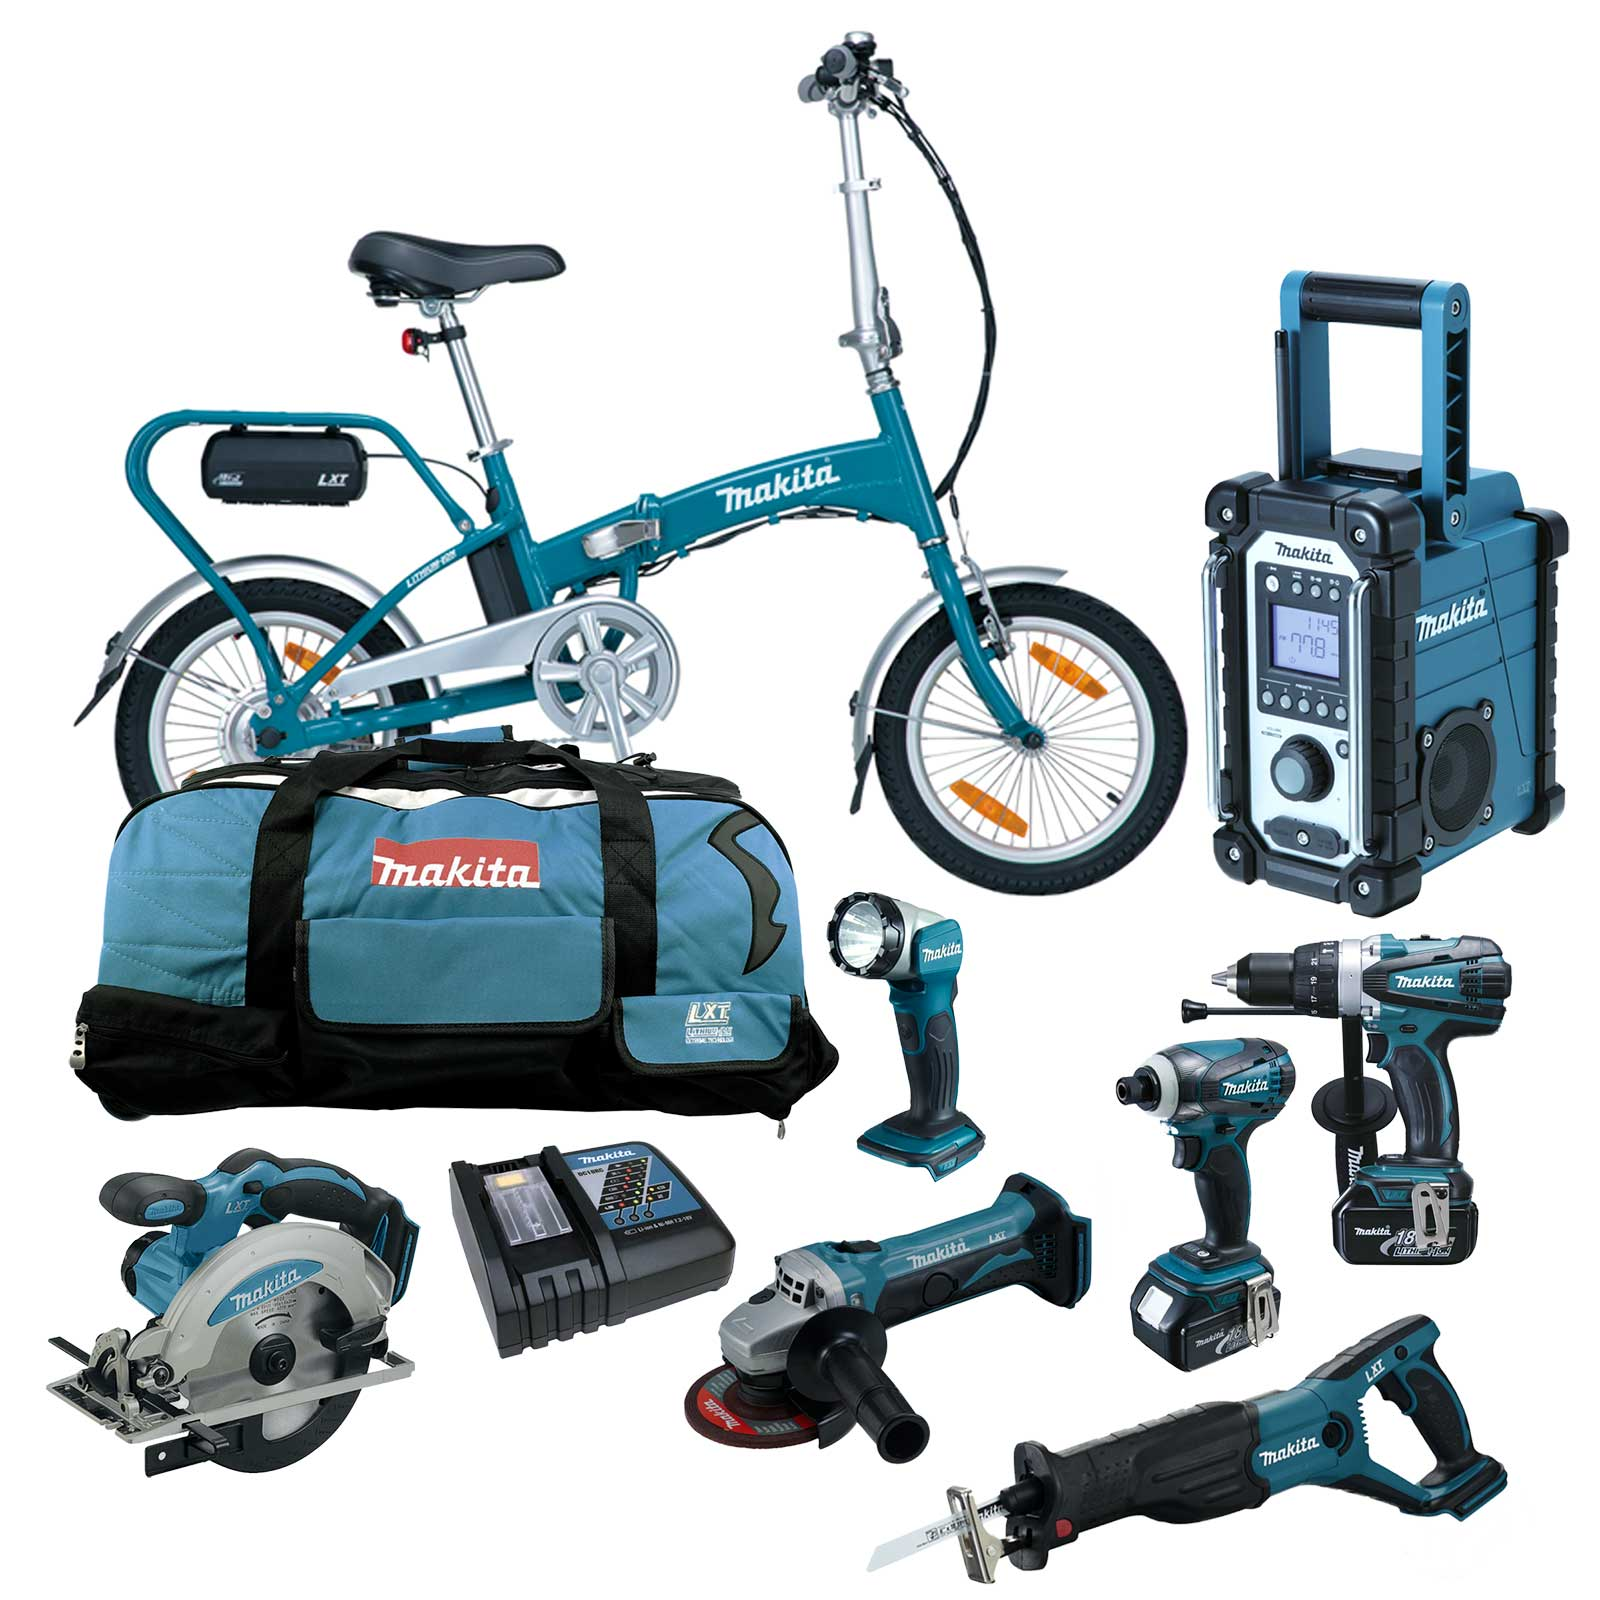 12tlg makita 18v profi akku werkzeug set dby180 elektrofahrrad ebike rfe rmj ebay. Black Bedroom Furniture Sets. Home Design Ideas